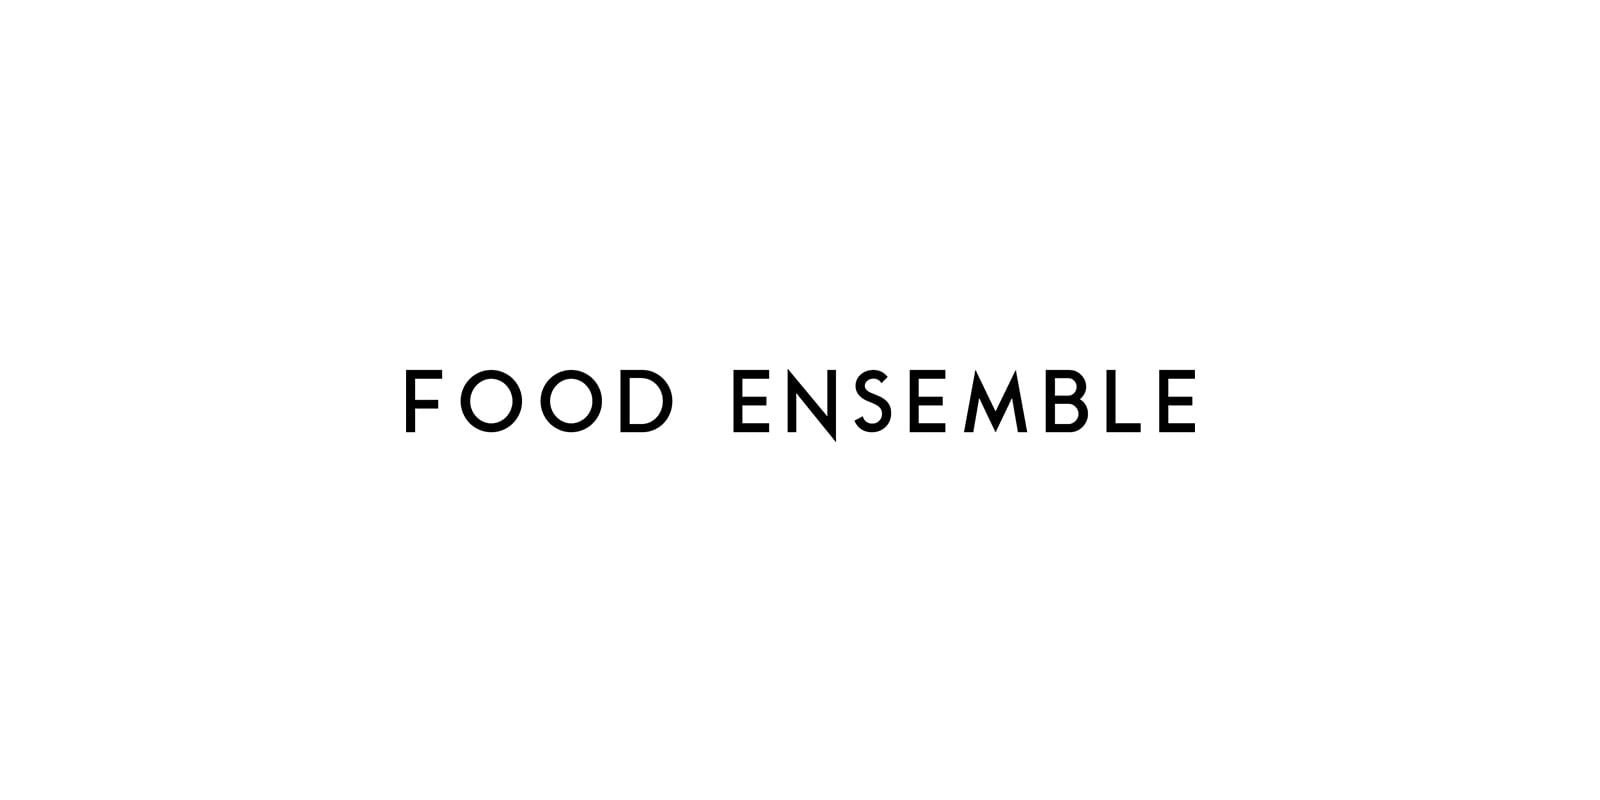 Food Ensemble